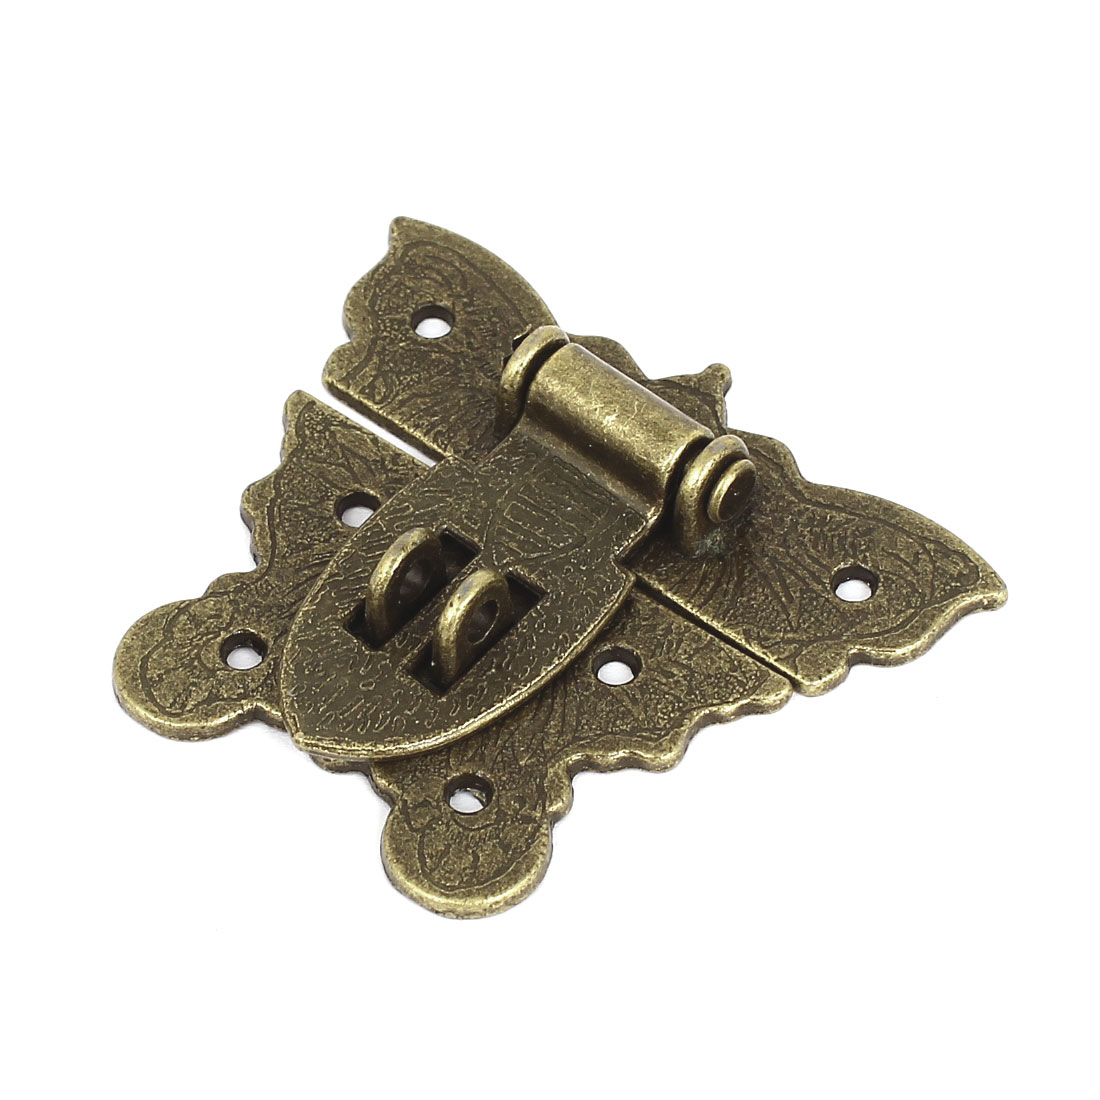 Cabinet Boxes Butterfly Metal Toggle Latch Catch Hasp with Screws Bronze Tone